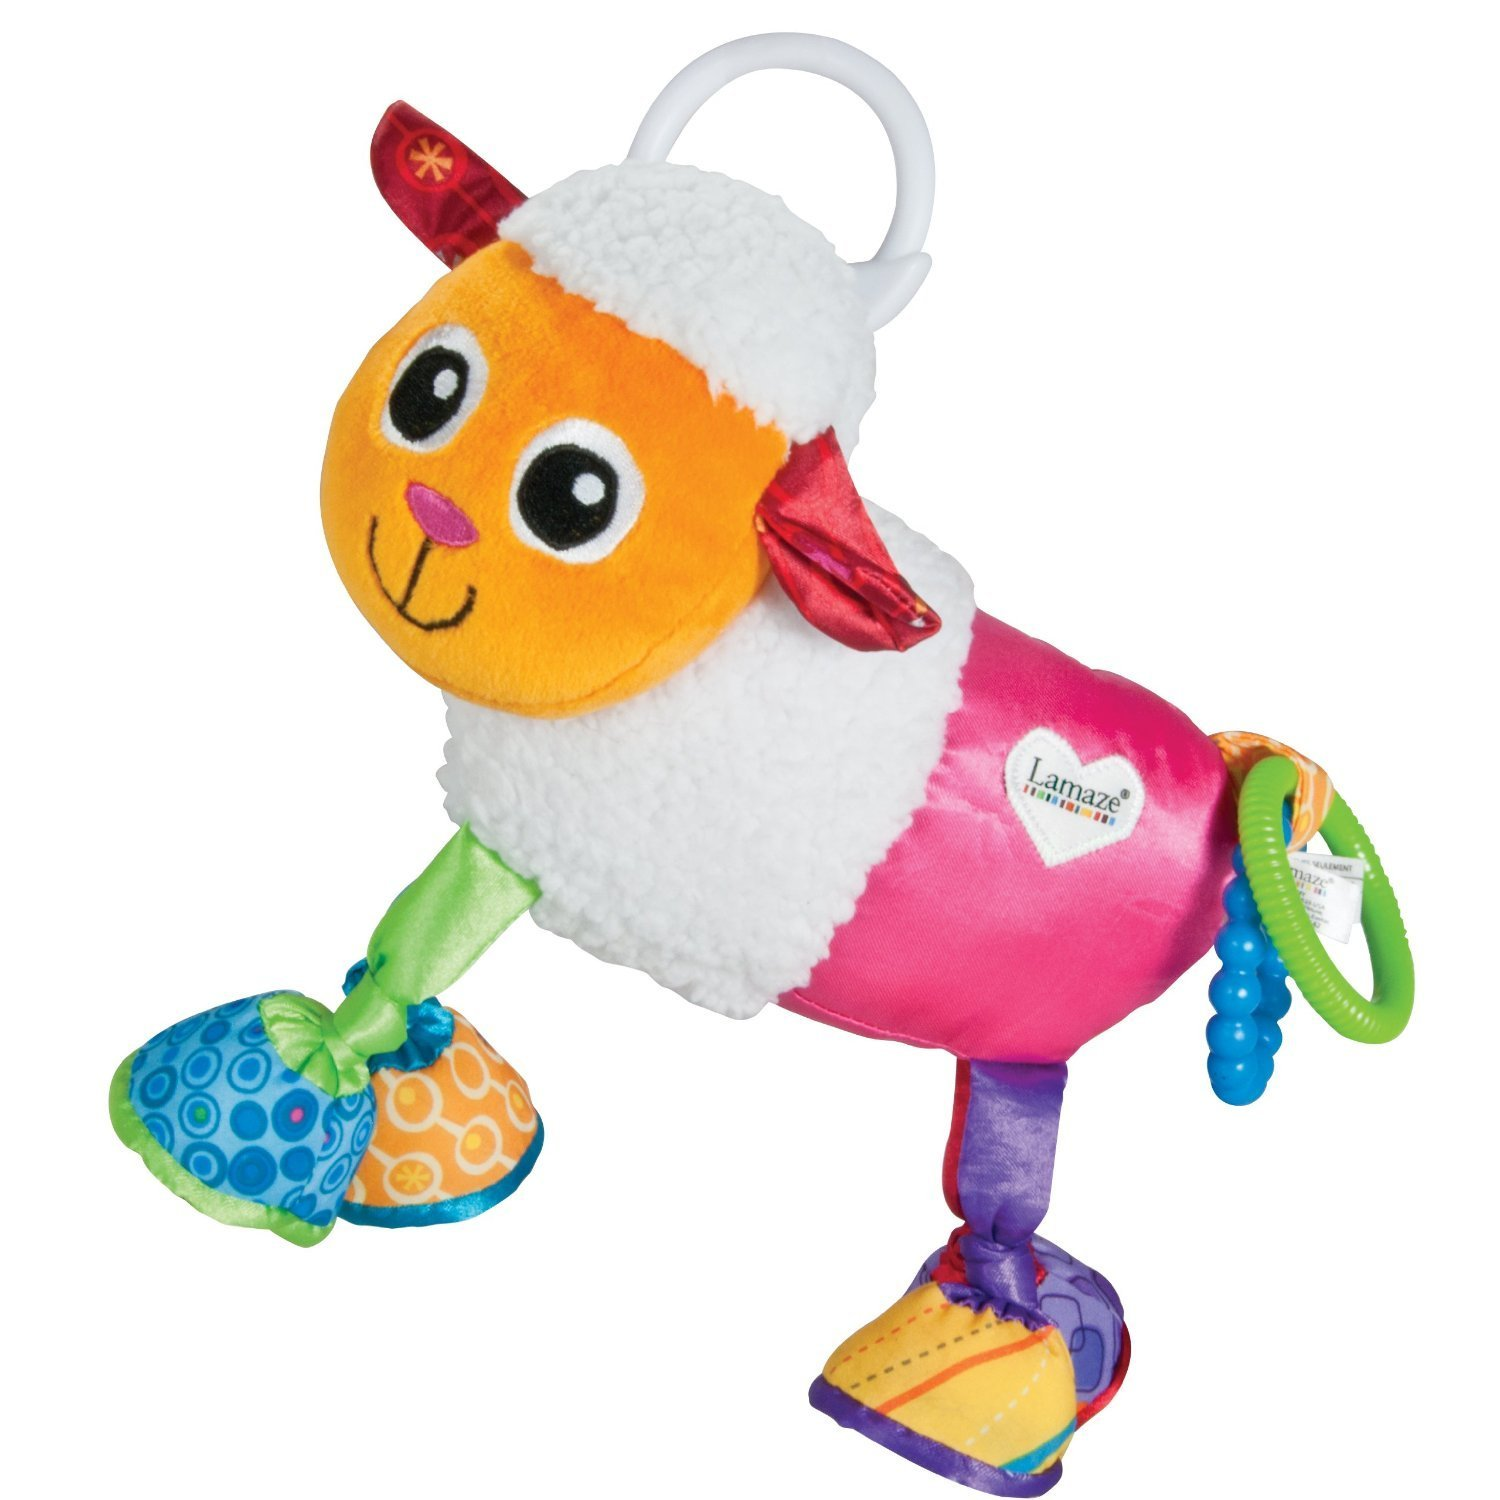 Lamaze Play & Grow Shearmy the Sheep Toy Infant Baby Care Toddler Toy Tomy | Sustuu